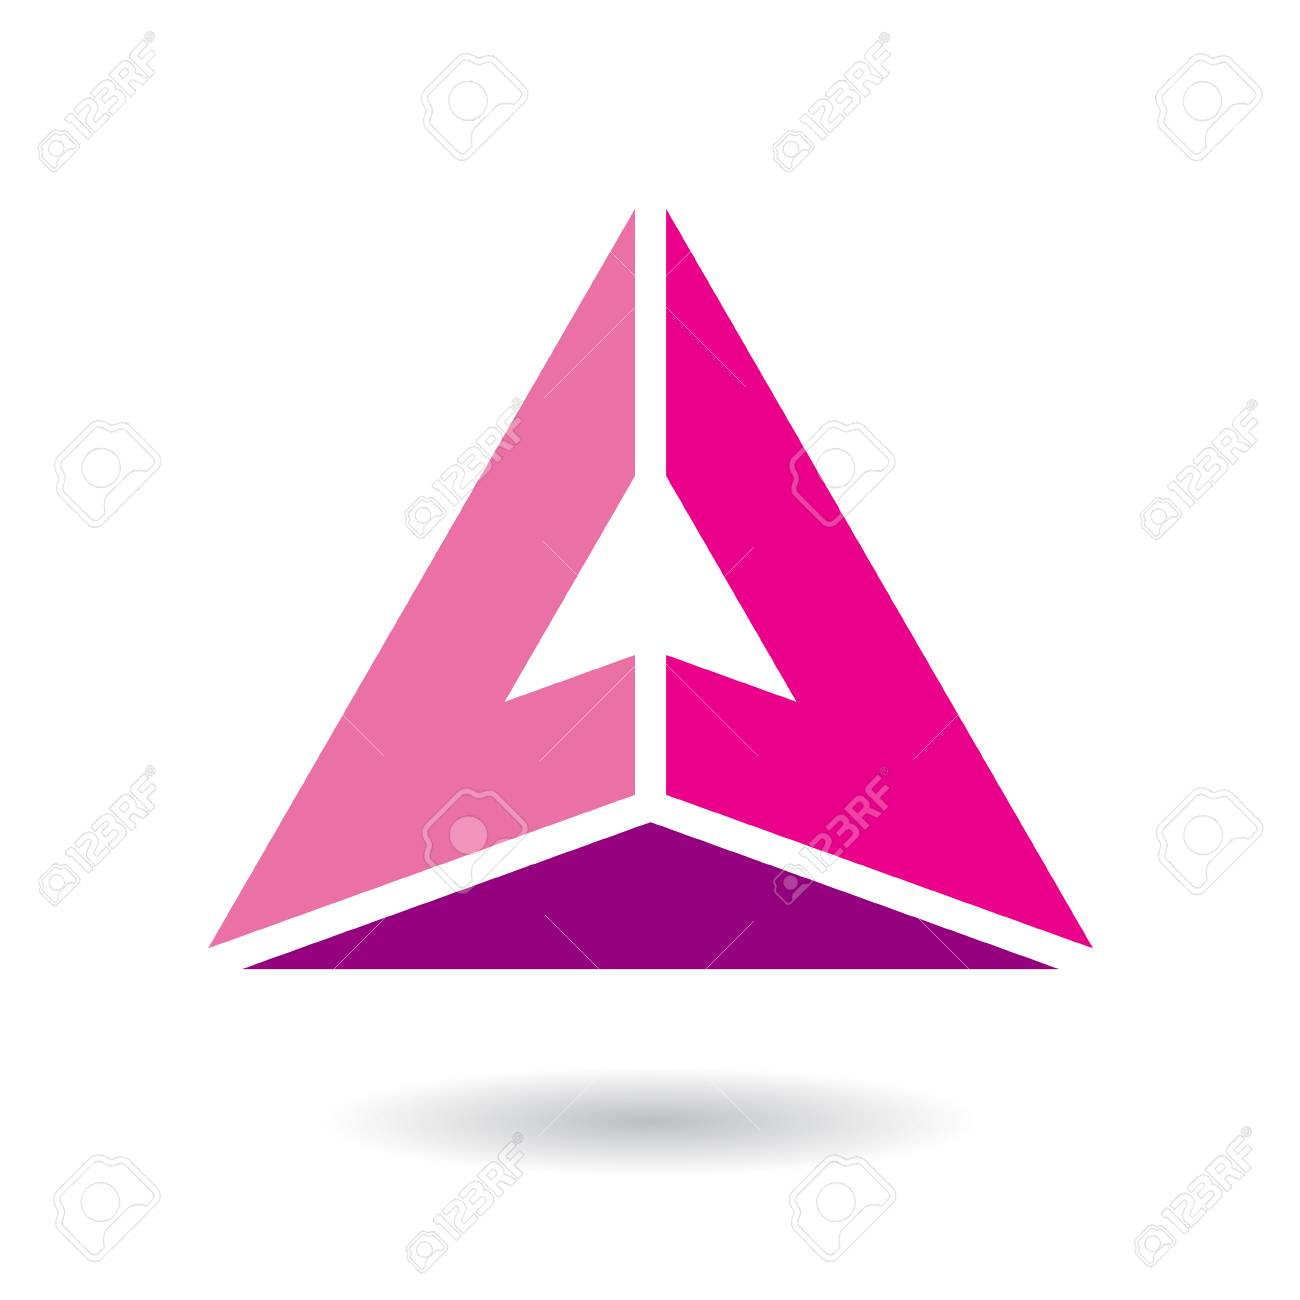 Design Concept Of A Colorful Abstract Triangular Icon Of Letter ...